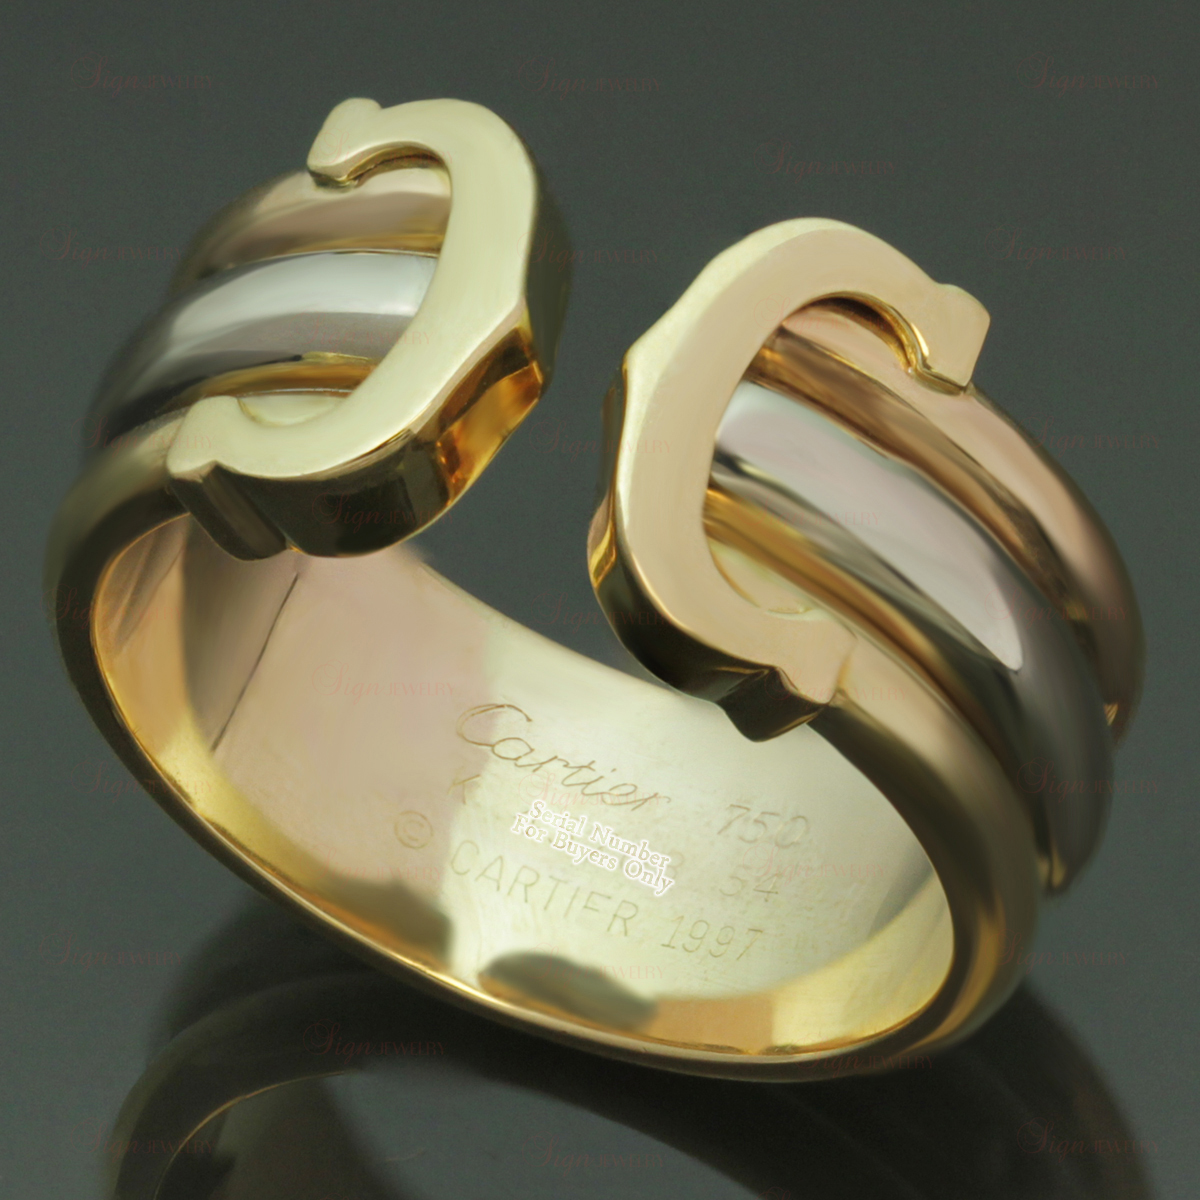 CARTIER Double C Decor 18k Tri Gold Open Band Ring